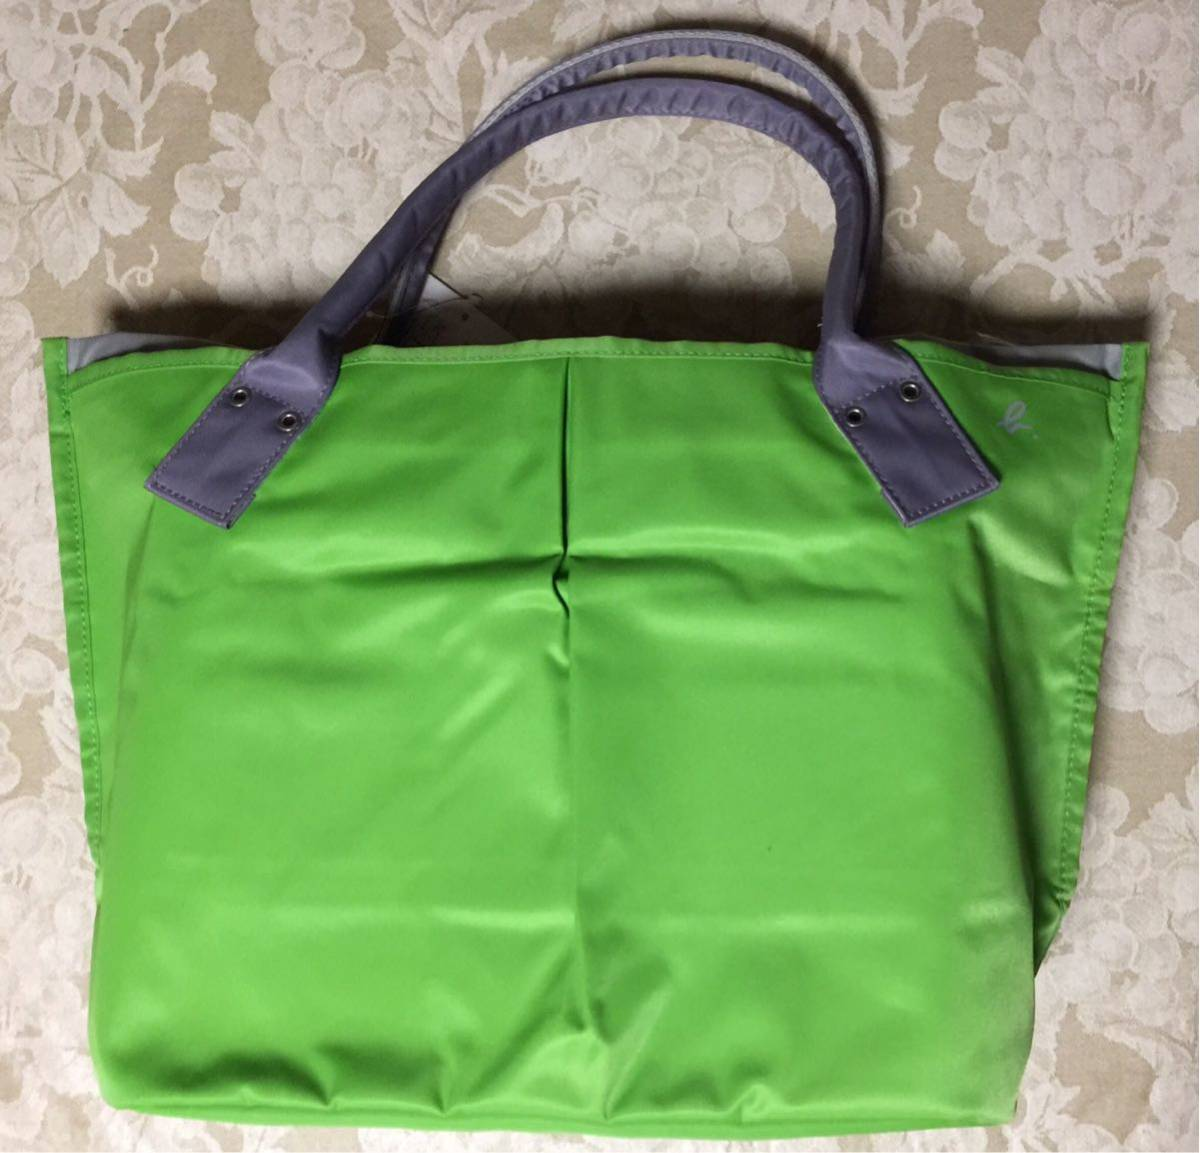 Agnes b tote bag (green)